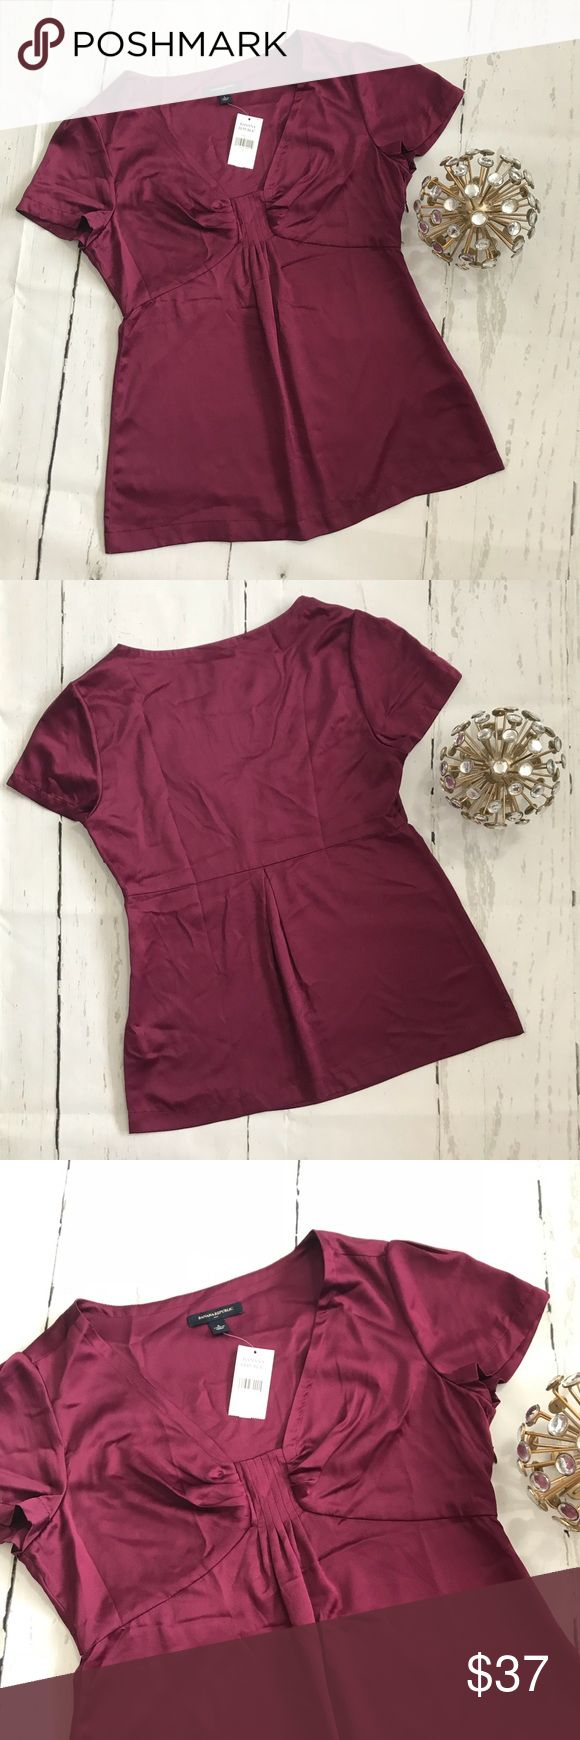 Banana Republic Blouse NWT This is a beautiful Banana Republic Blouse, this color looks amazing. It's like a Burgundy Color, colors may varied by light. See pictures. •NWT •100% Polyester  •Size Small •Side Sipped   🚫No Trades 🚫  📦 Fast Shipping 📦 💵 Open to Offers 💵  💕 Willing to Bundle 💕 ➵ Pet free home 🐶 ➵ Smoke free home 🚬 🌸Always Shipped the same or next day🌸 Banana Republic Tops Blouses